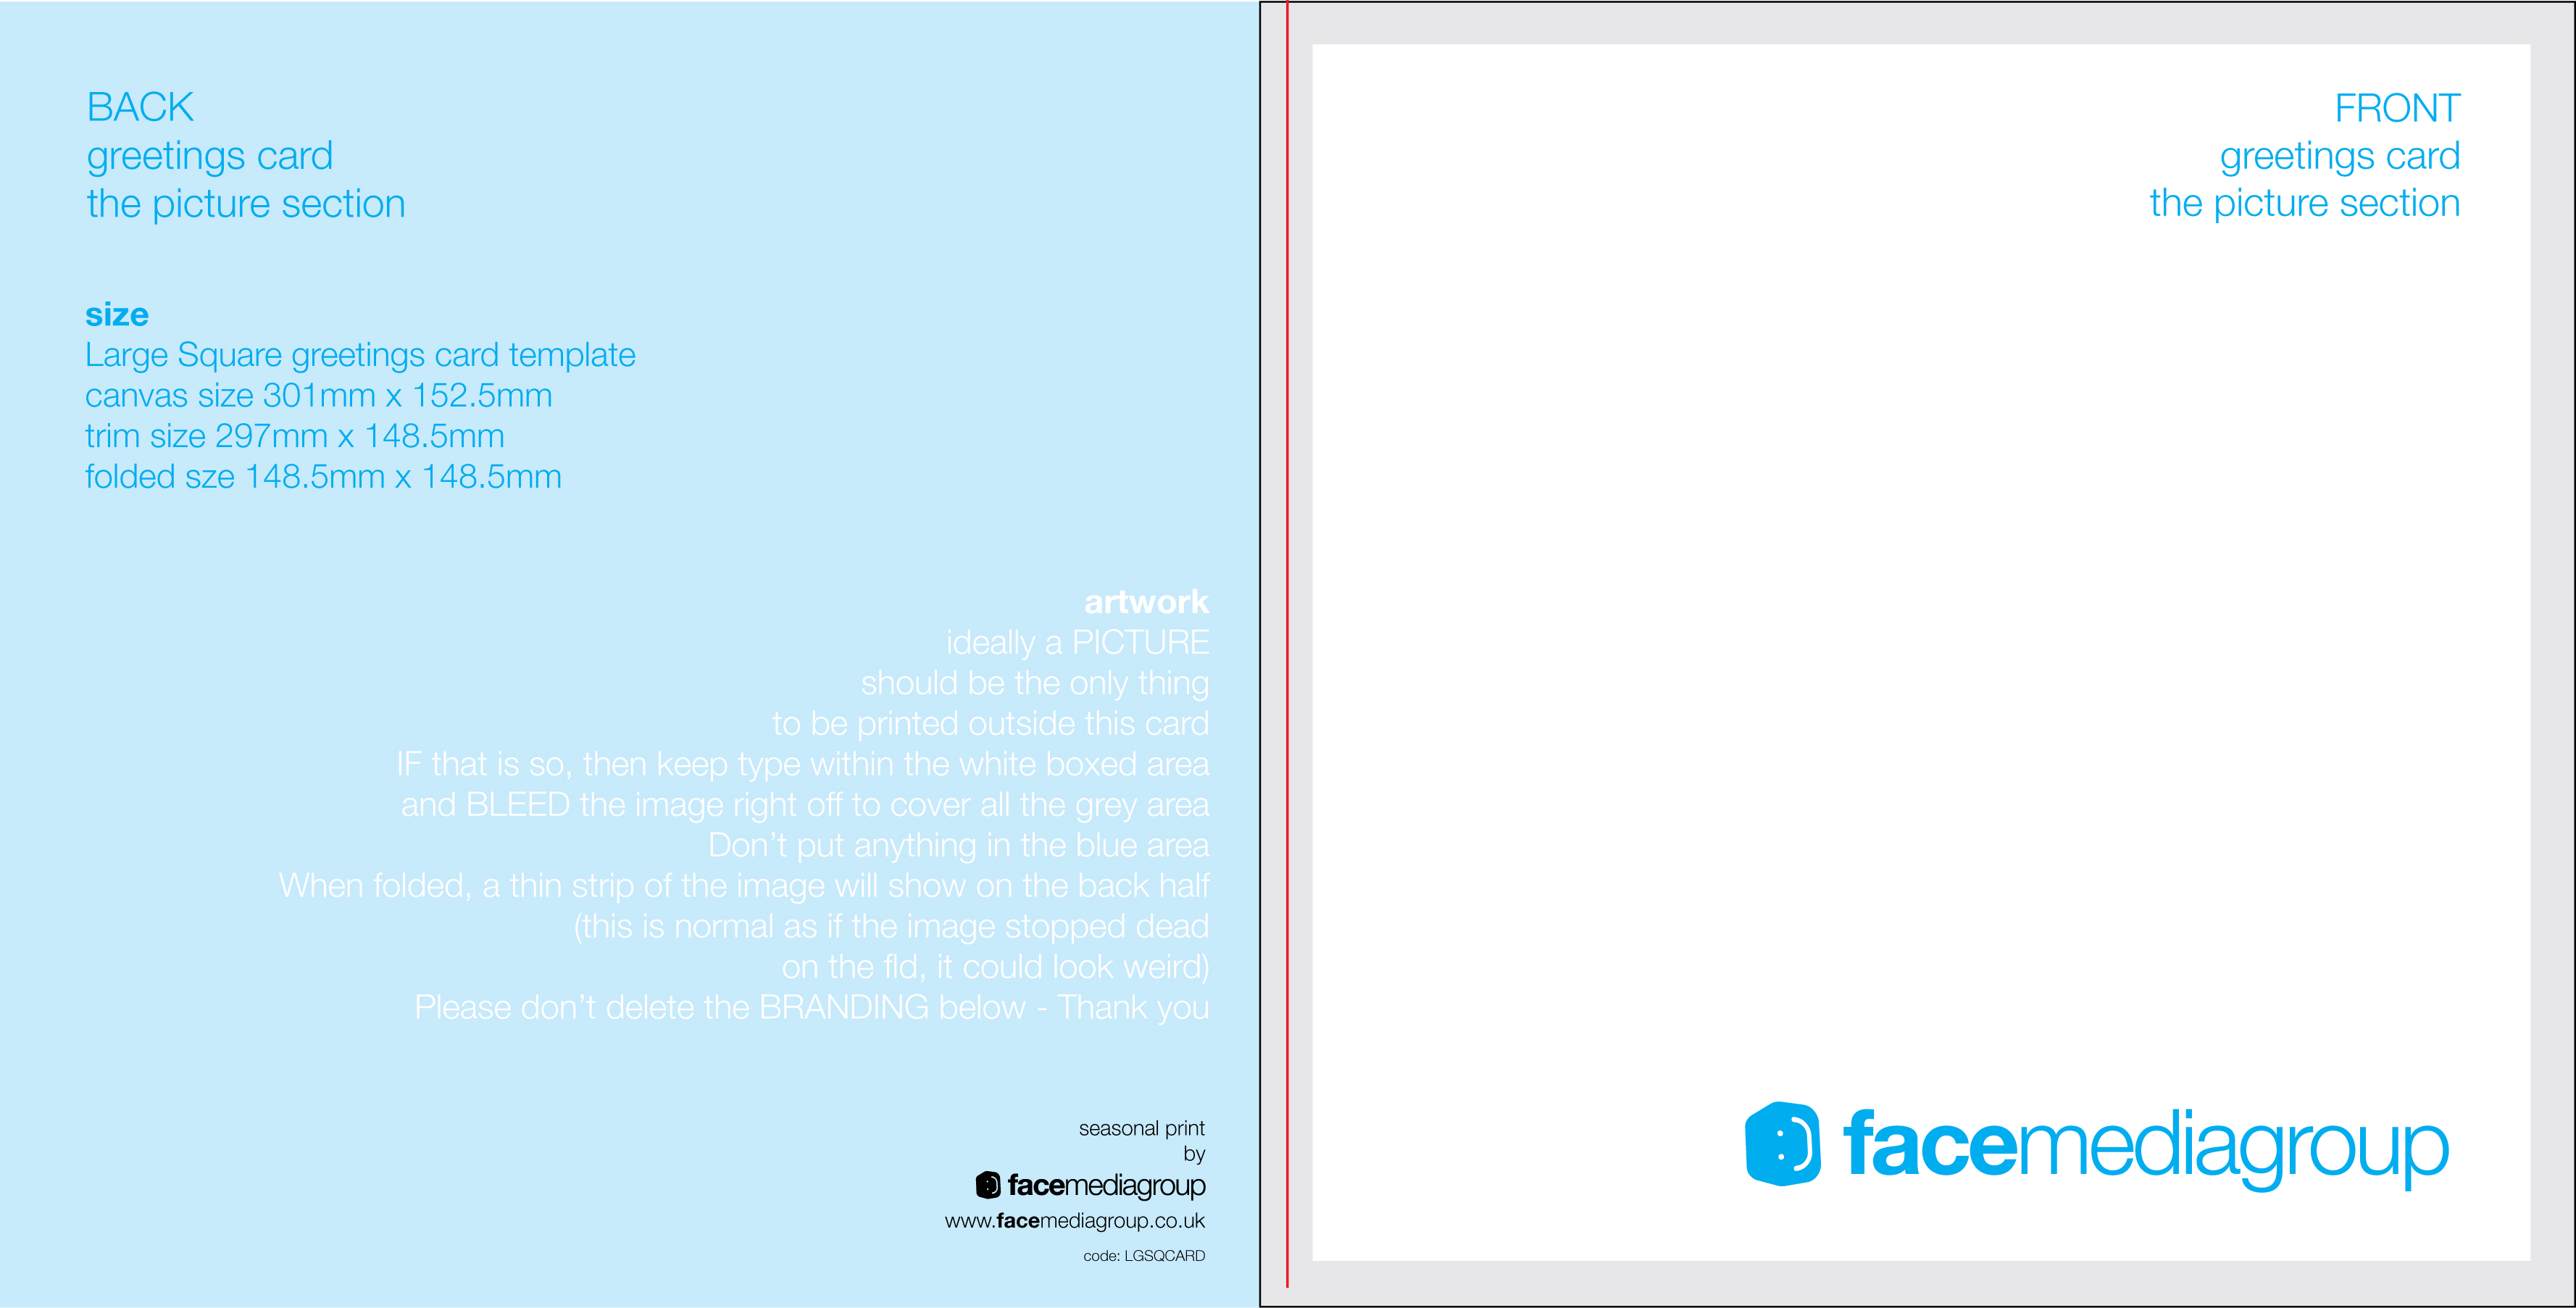 FREE Blank Greetings Card Artwork Templates for Download – Free Blank Greeting Card Templates